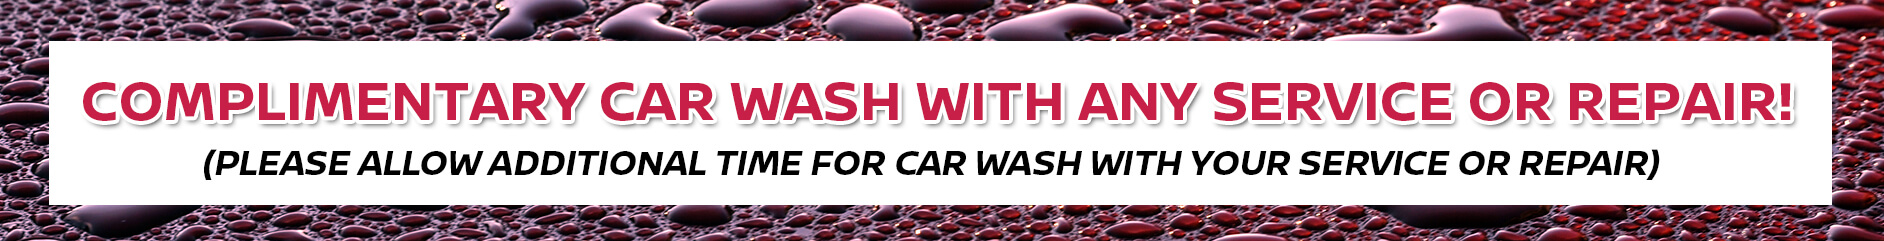 Complimentary car wash with any service or repair